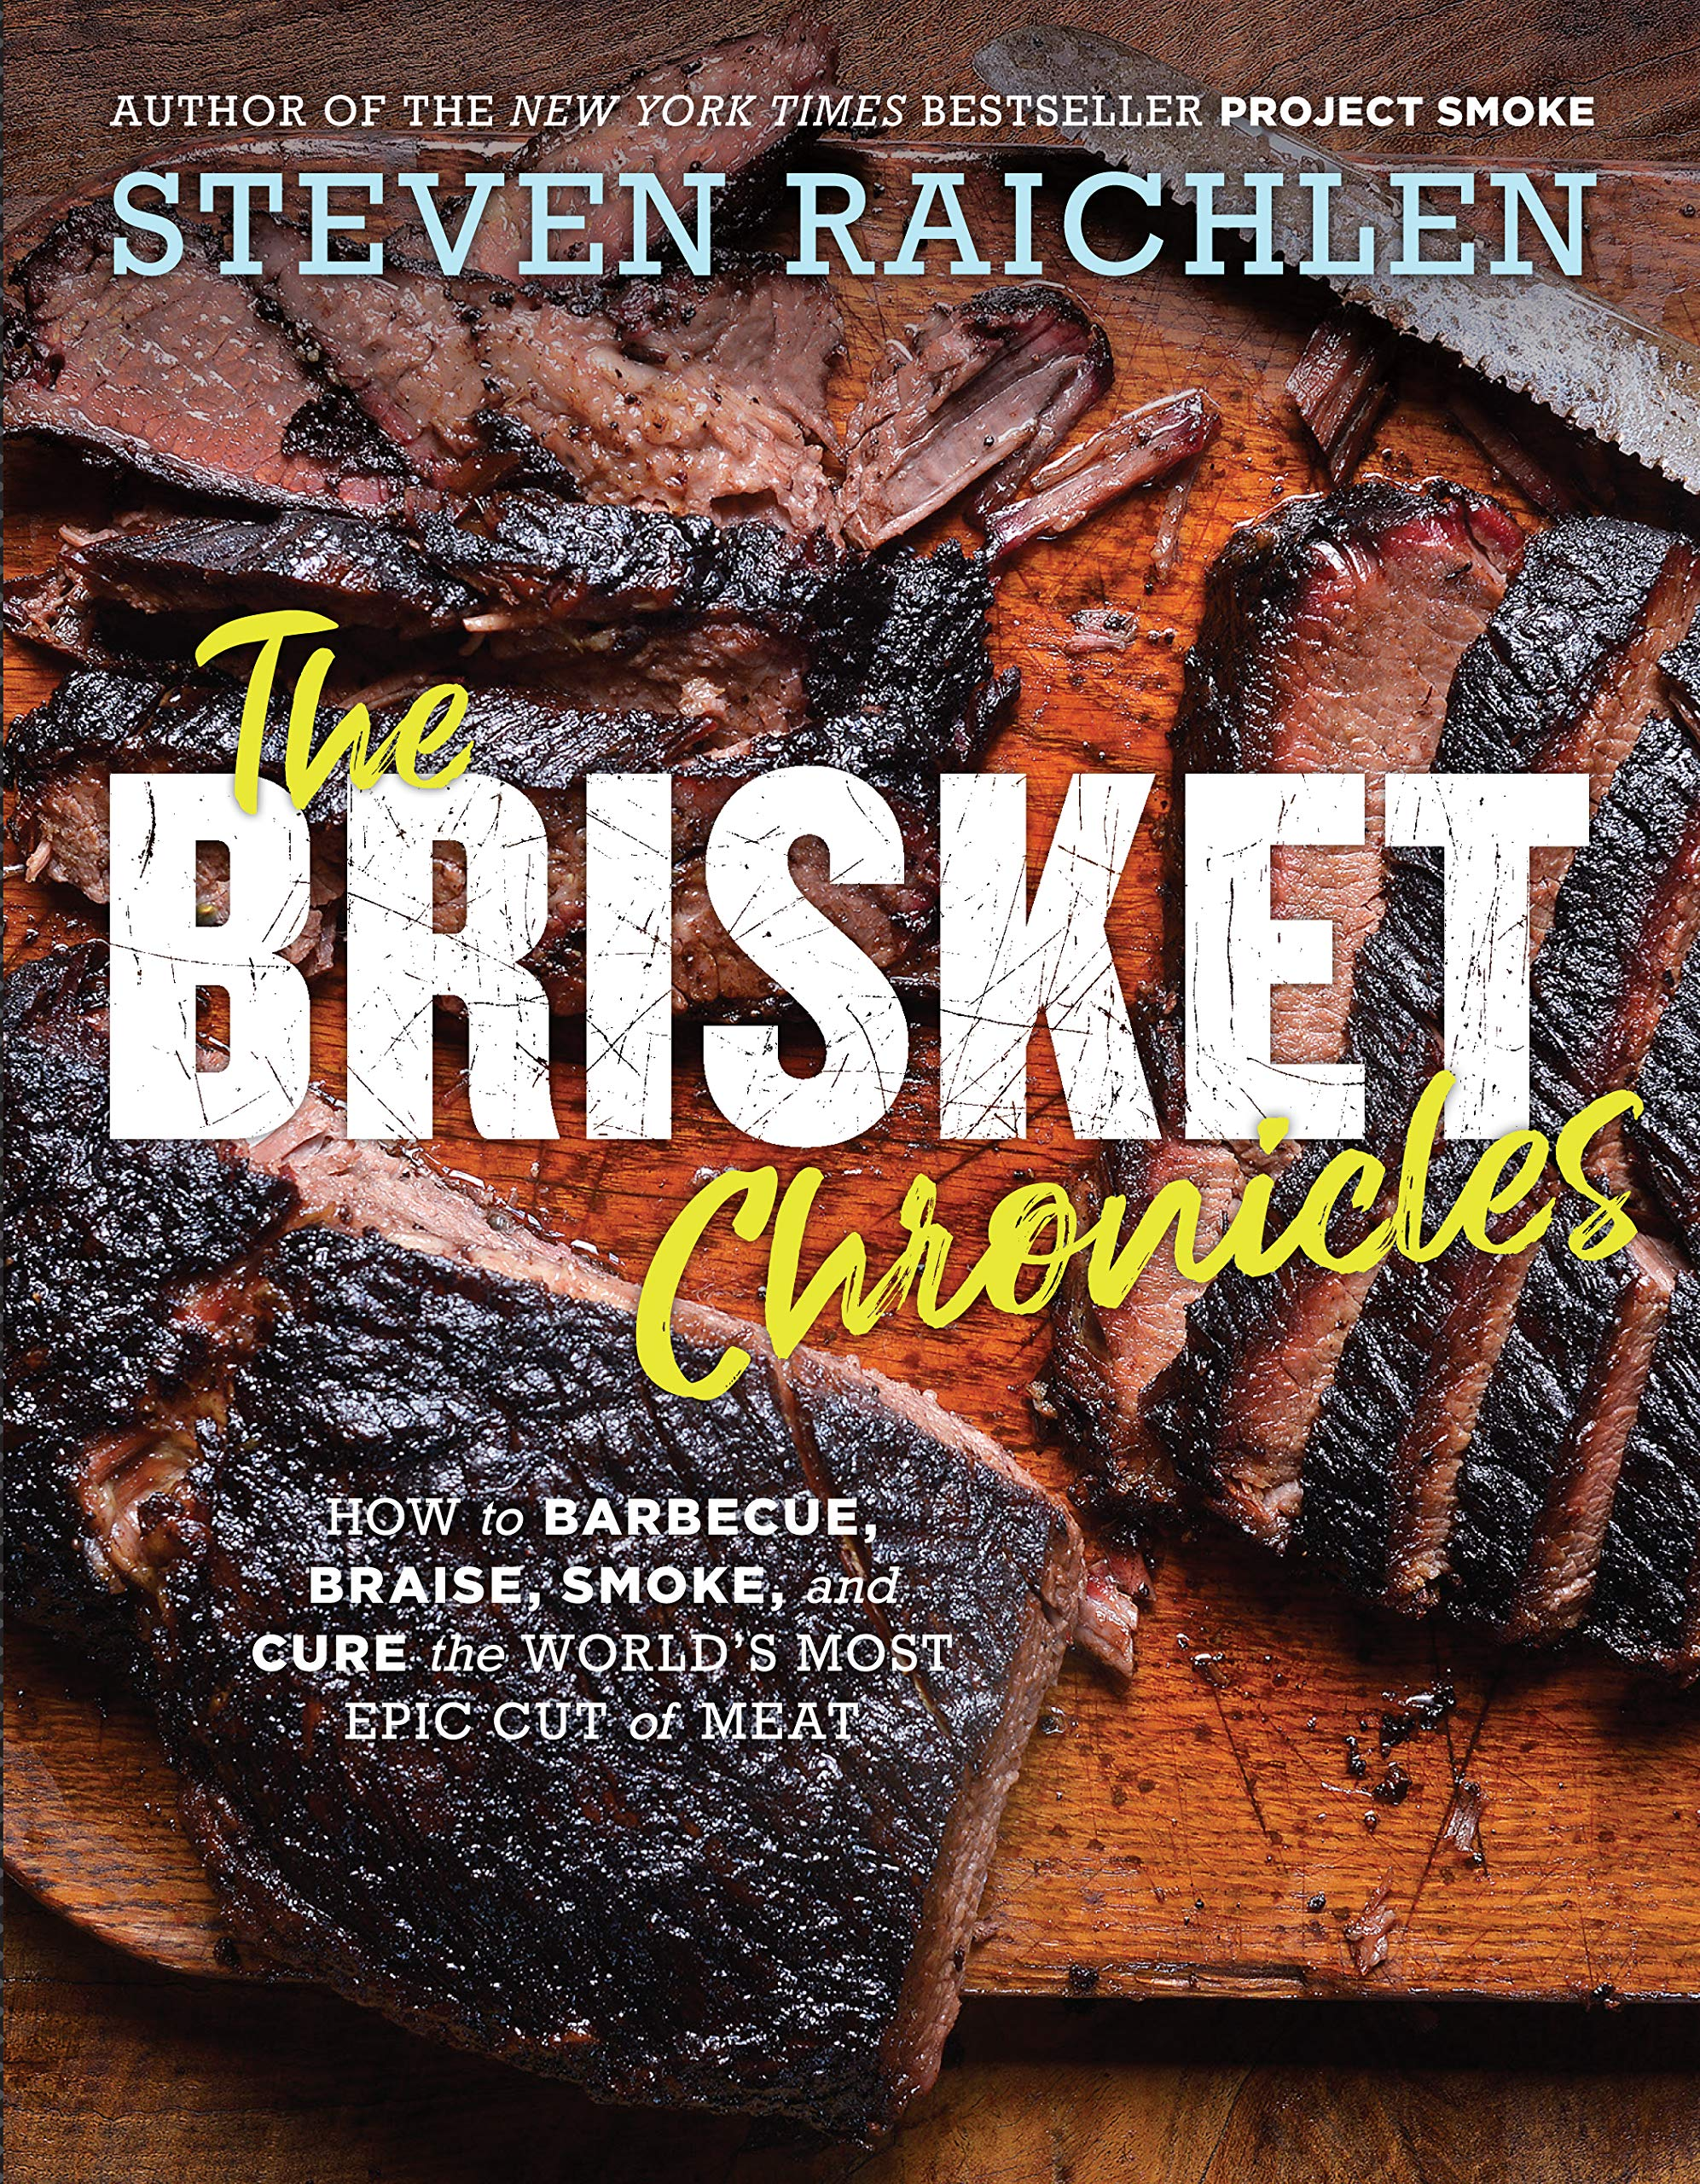 Brisket Chronicles Barbecue Braise Versatile product image